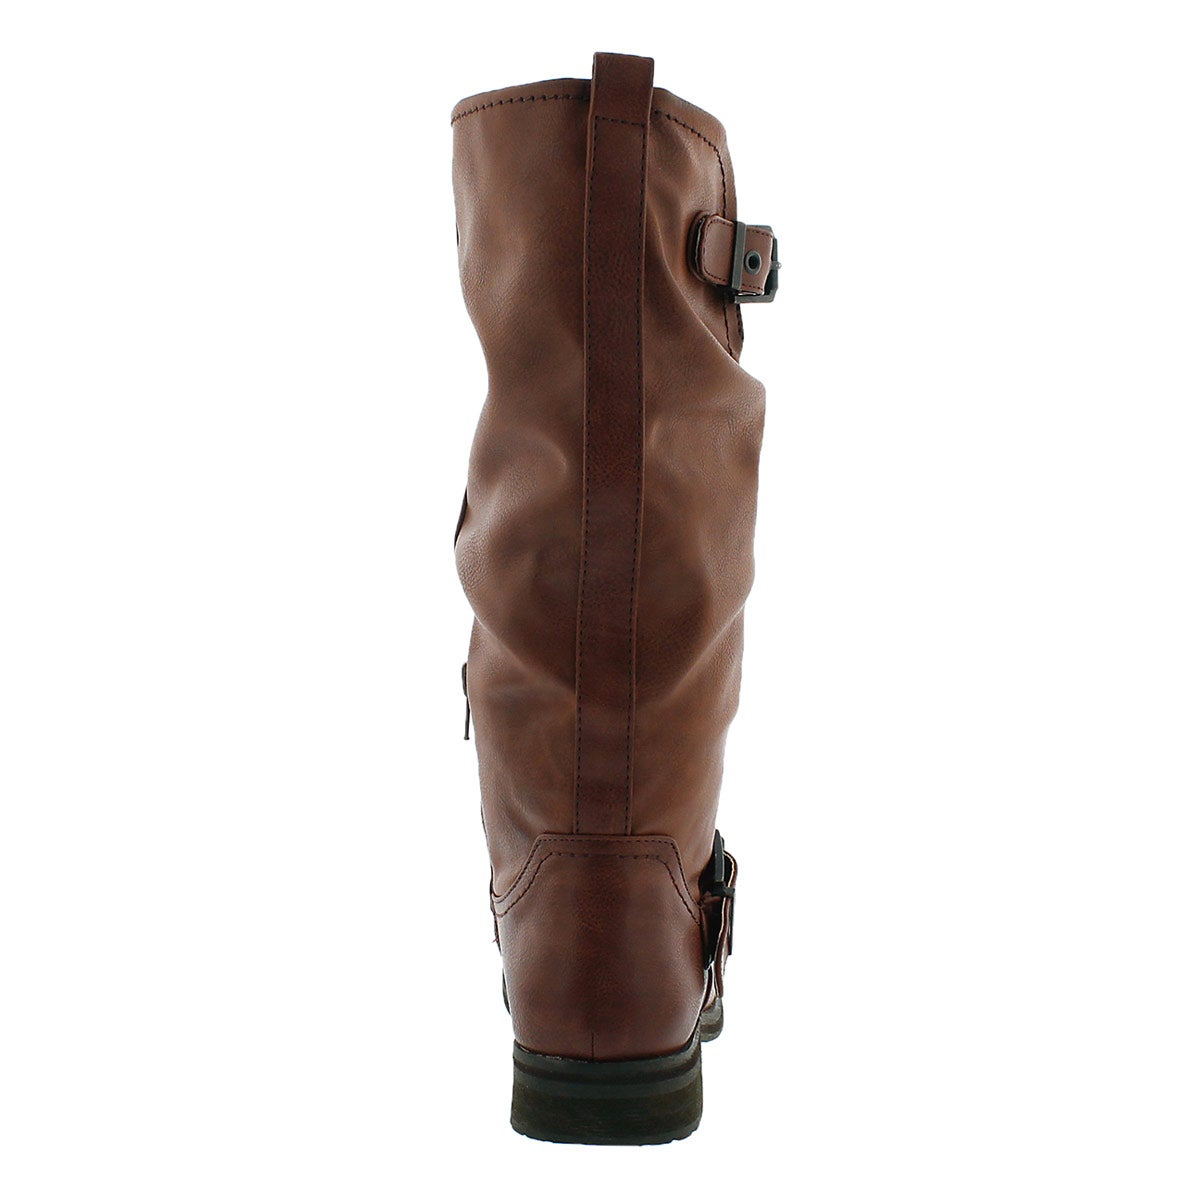 Lds Bryce brown casual riding boot